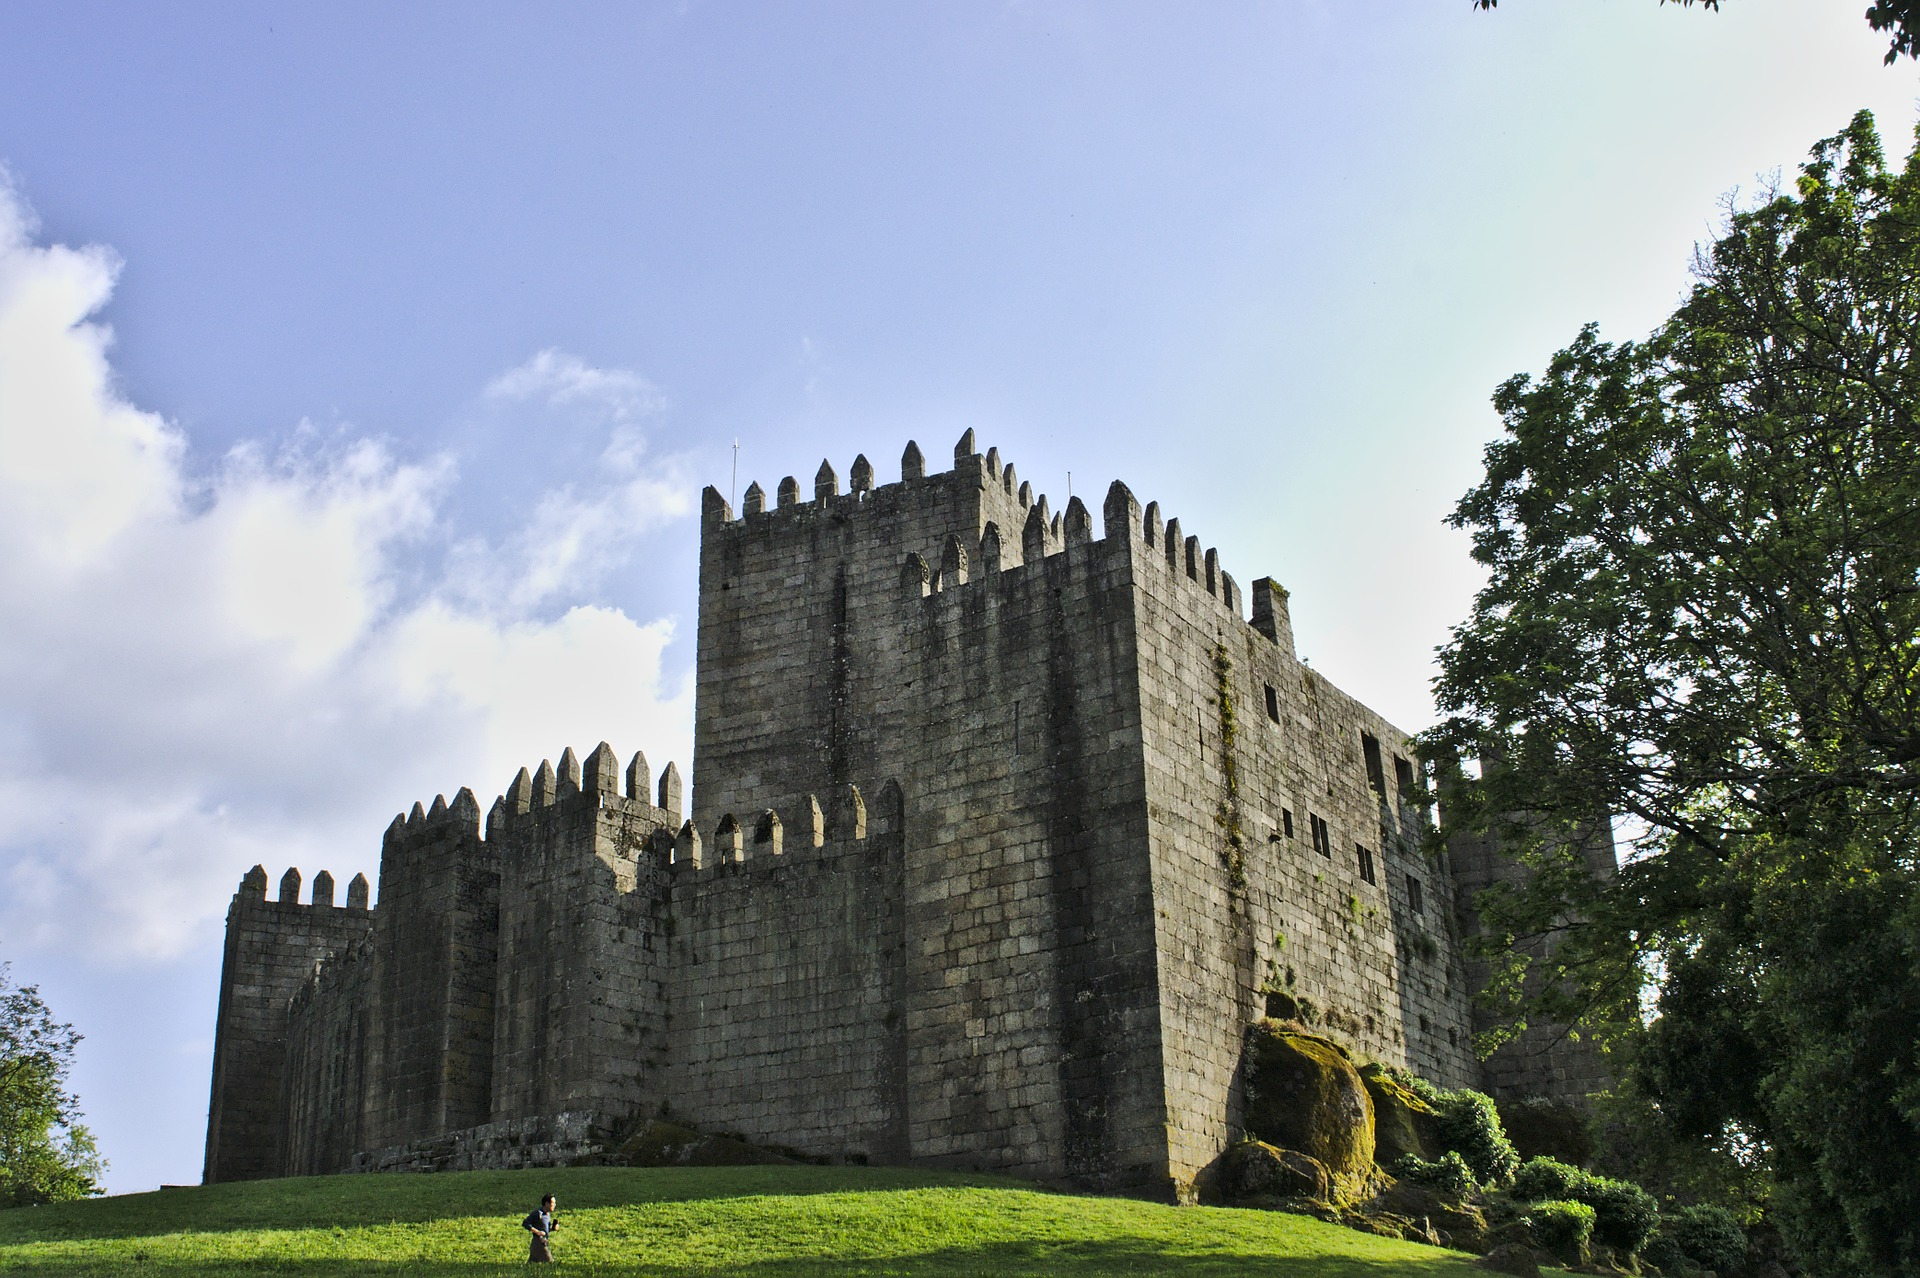 Guimarães Historic Center & Vinhos Verdes Region